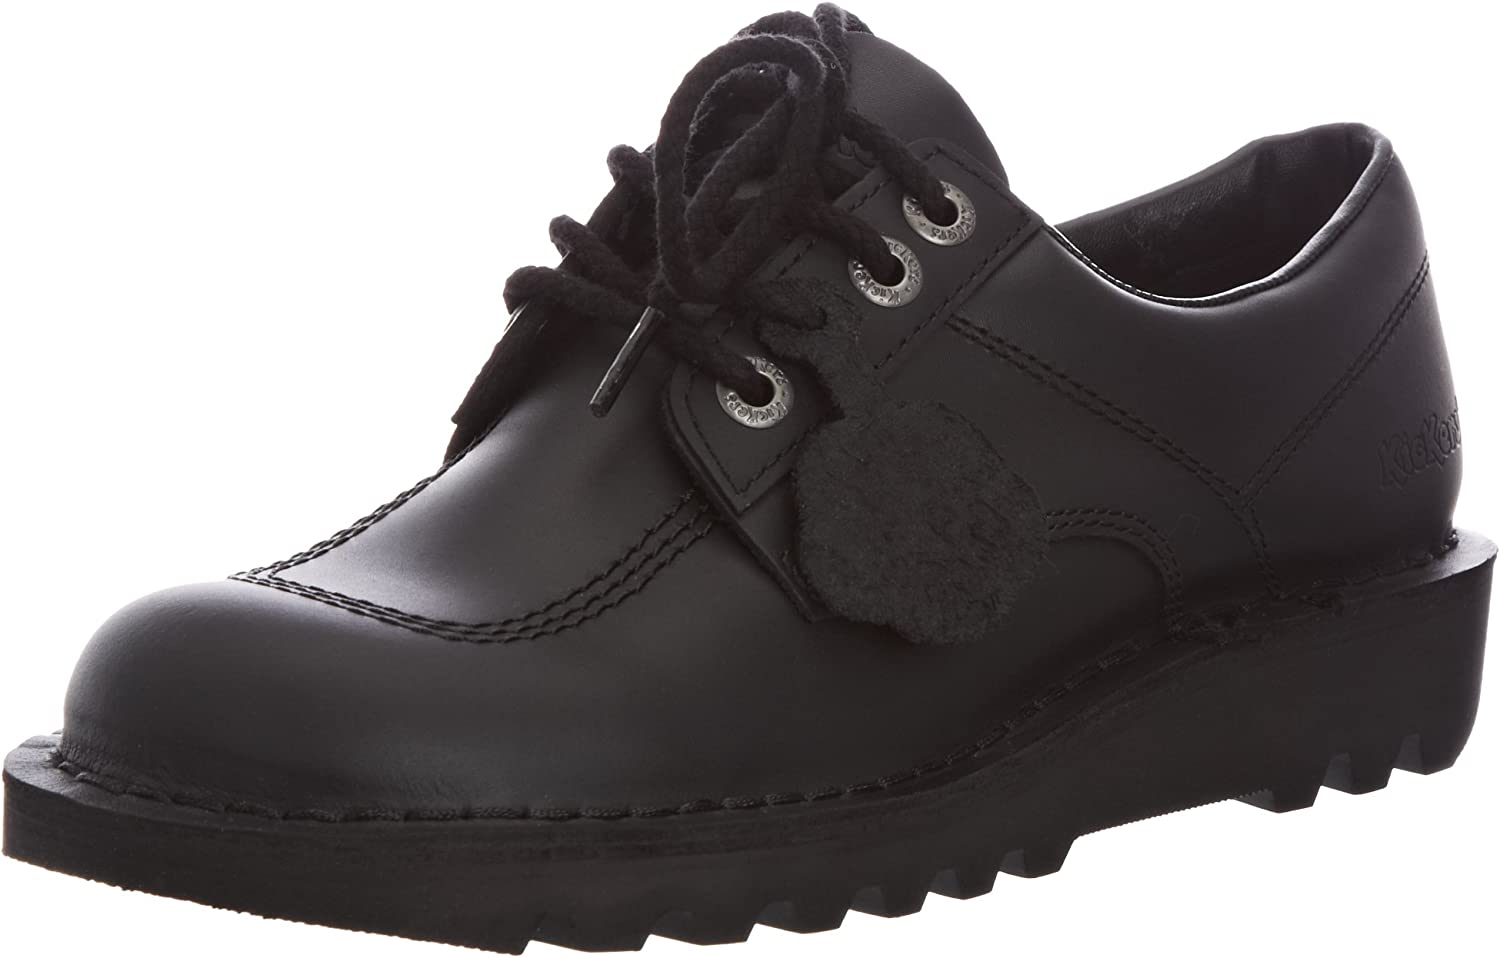 Kickers Kick Lo M Core Mens Black Leather shoes, UK11